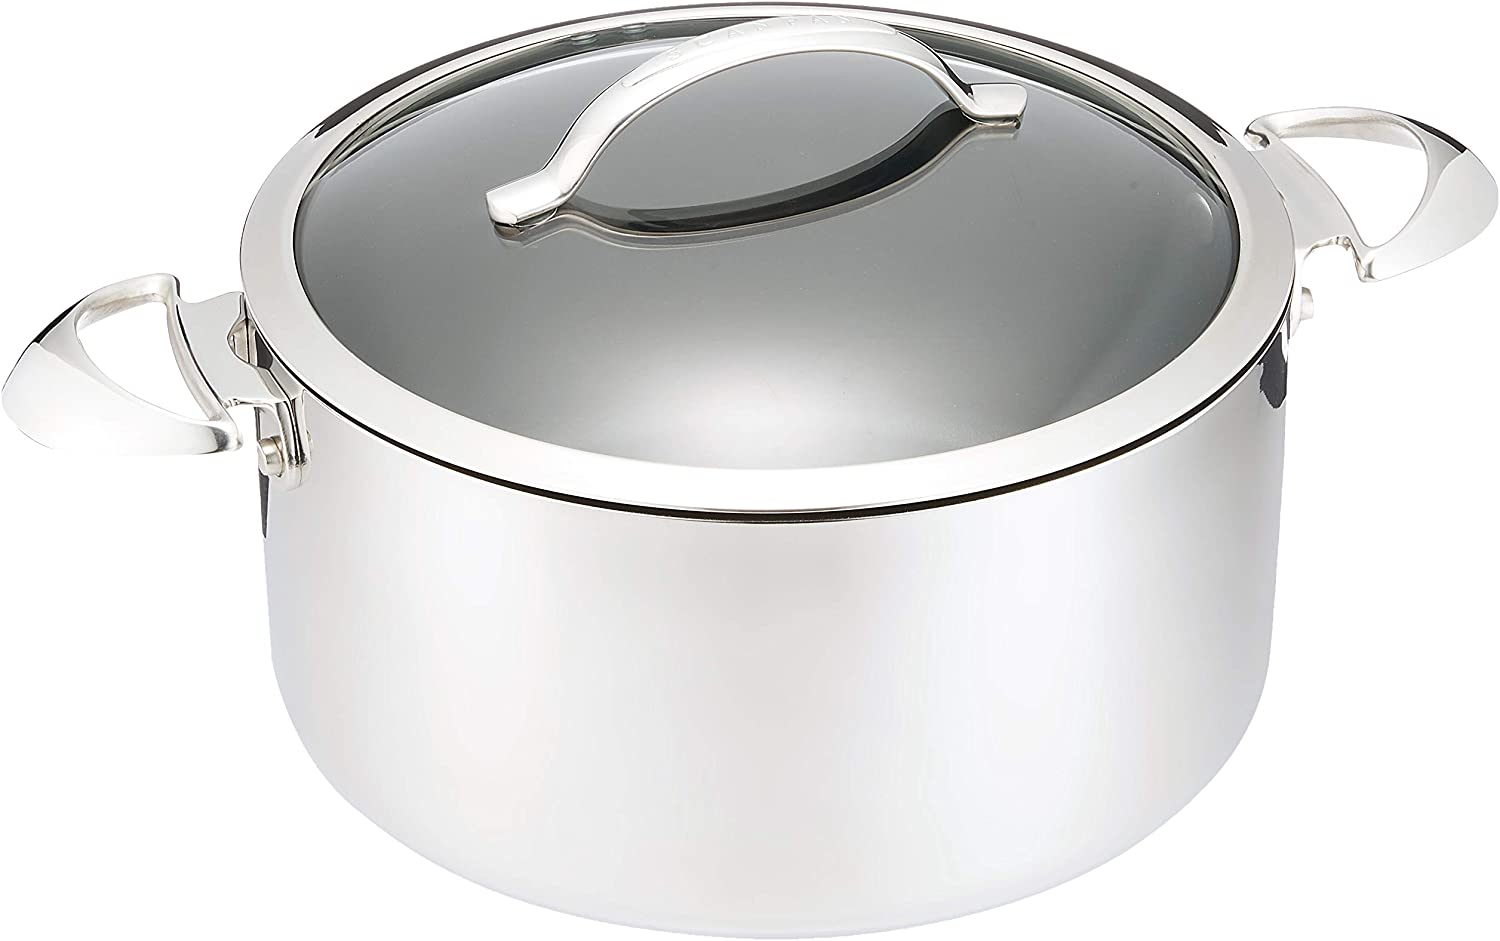 SEAL Max 71% OFF limited product Scanpan HAPTIQ 7.5 Quart Oven Covered Dutch